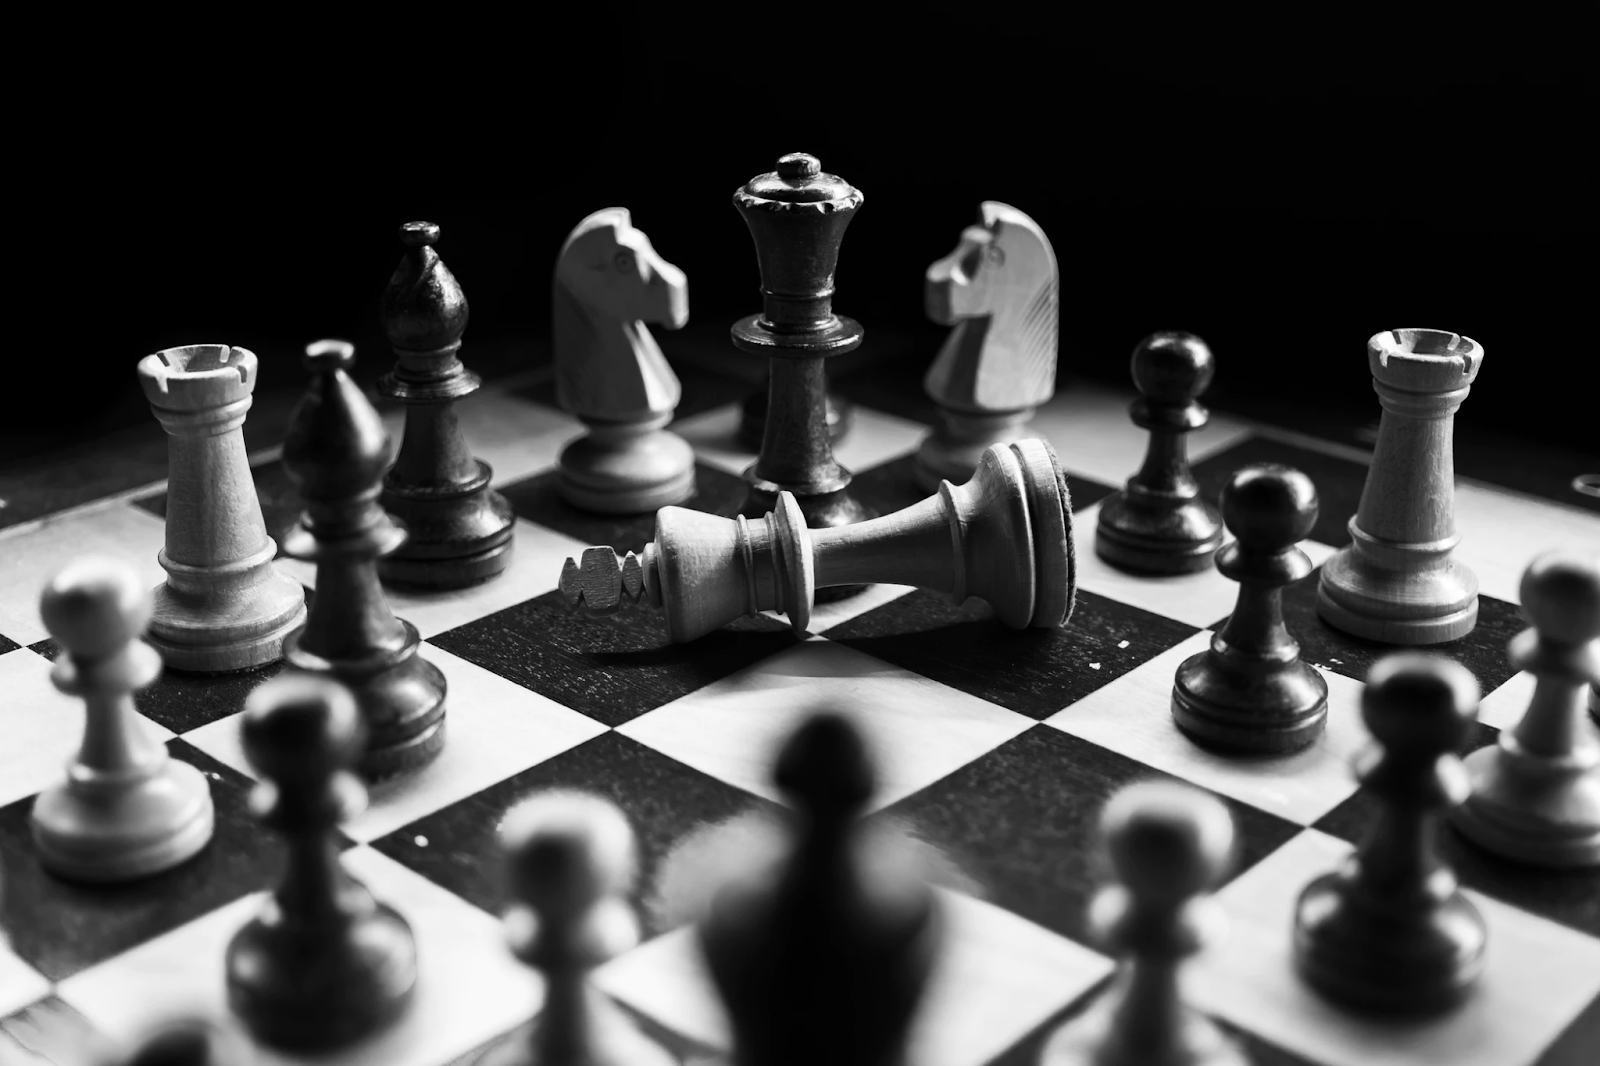 Black and white photo with a chessboard and chess pieces.